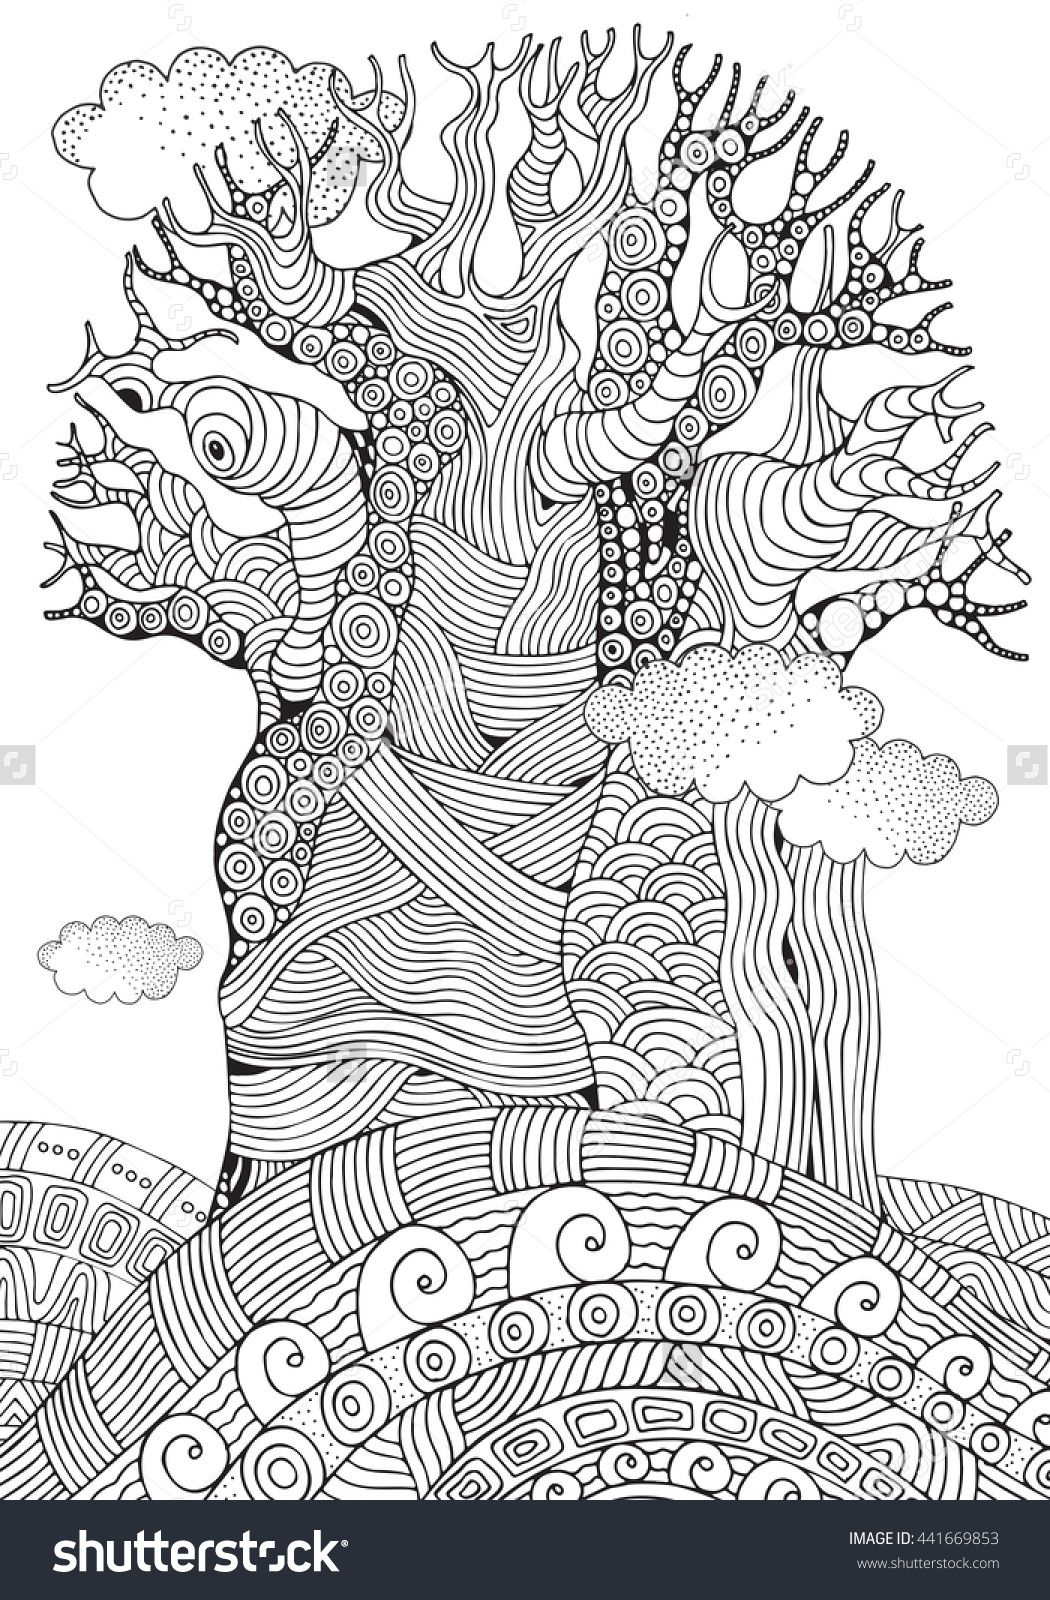 Click Baobab Trees Planet Coloring Page For Printable Version